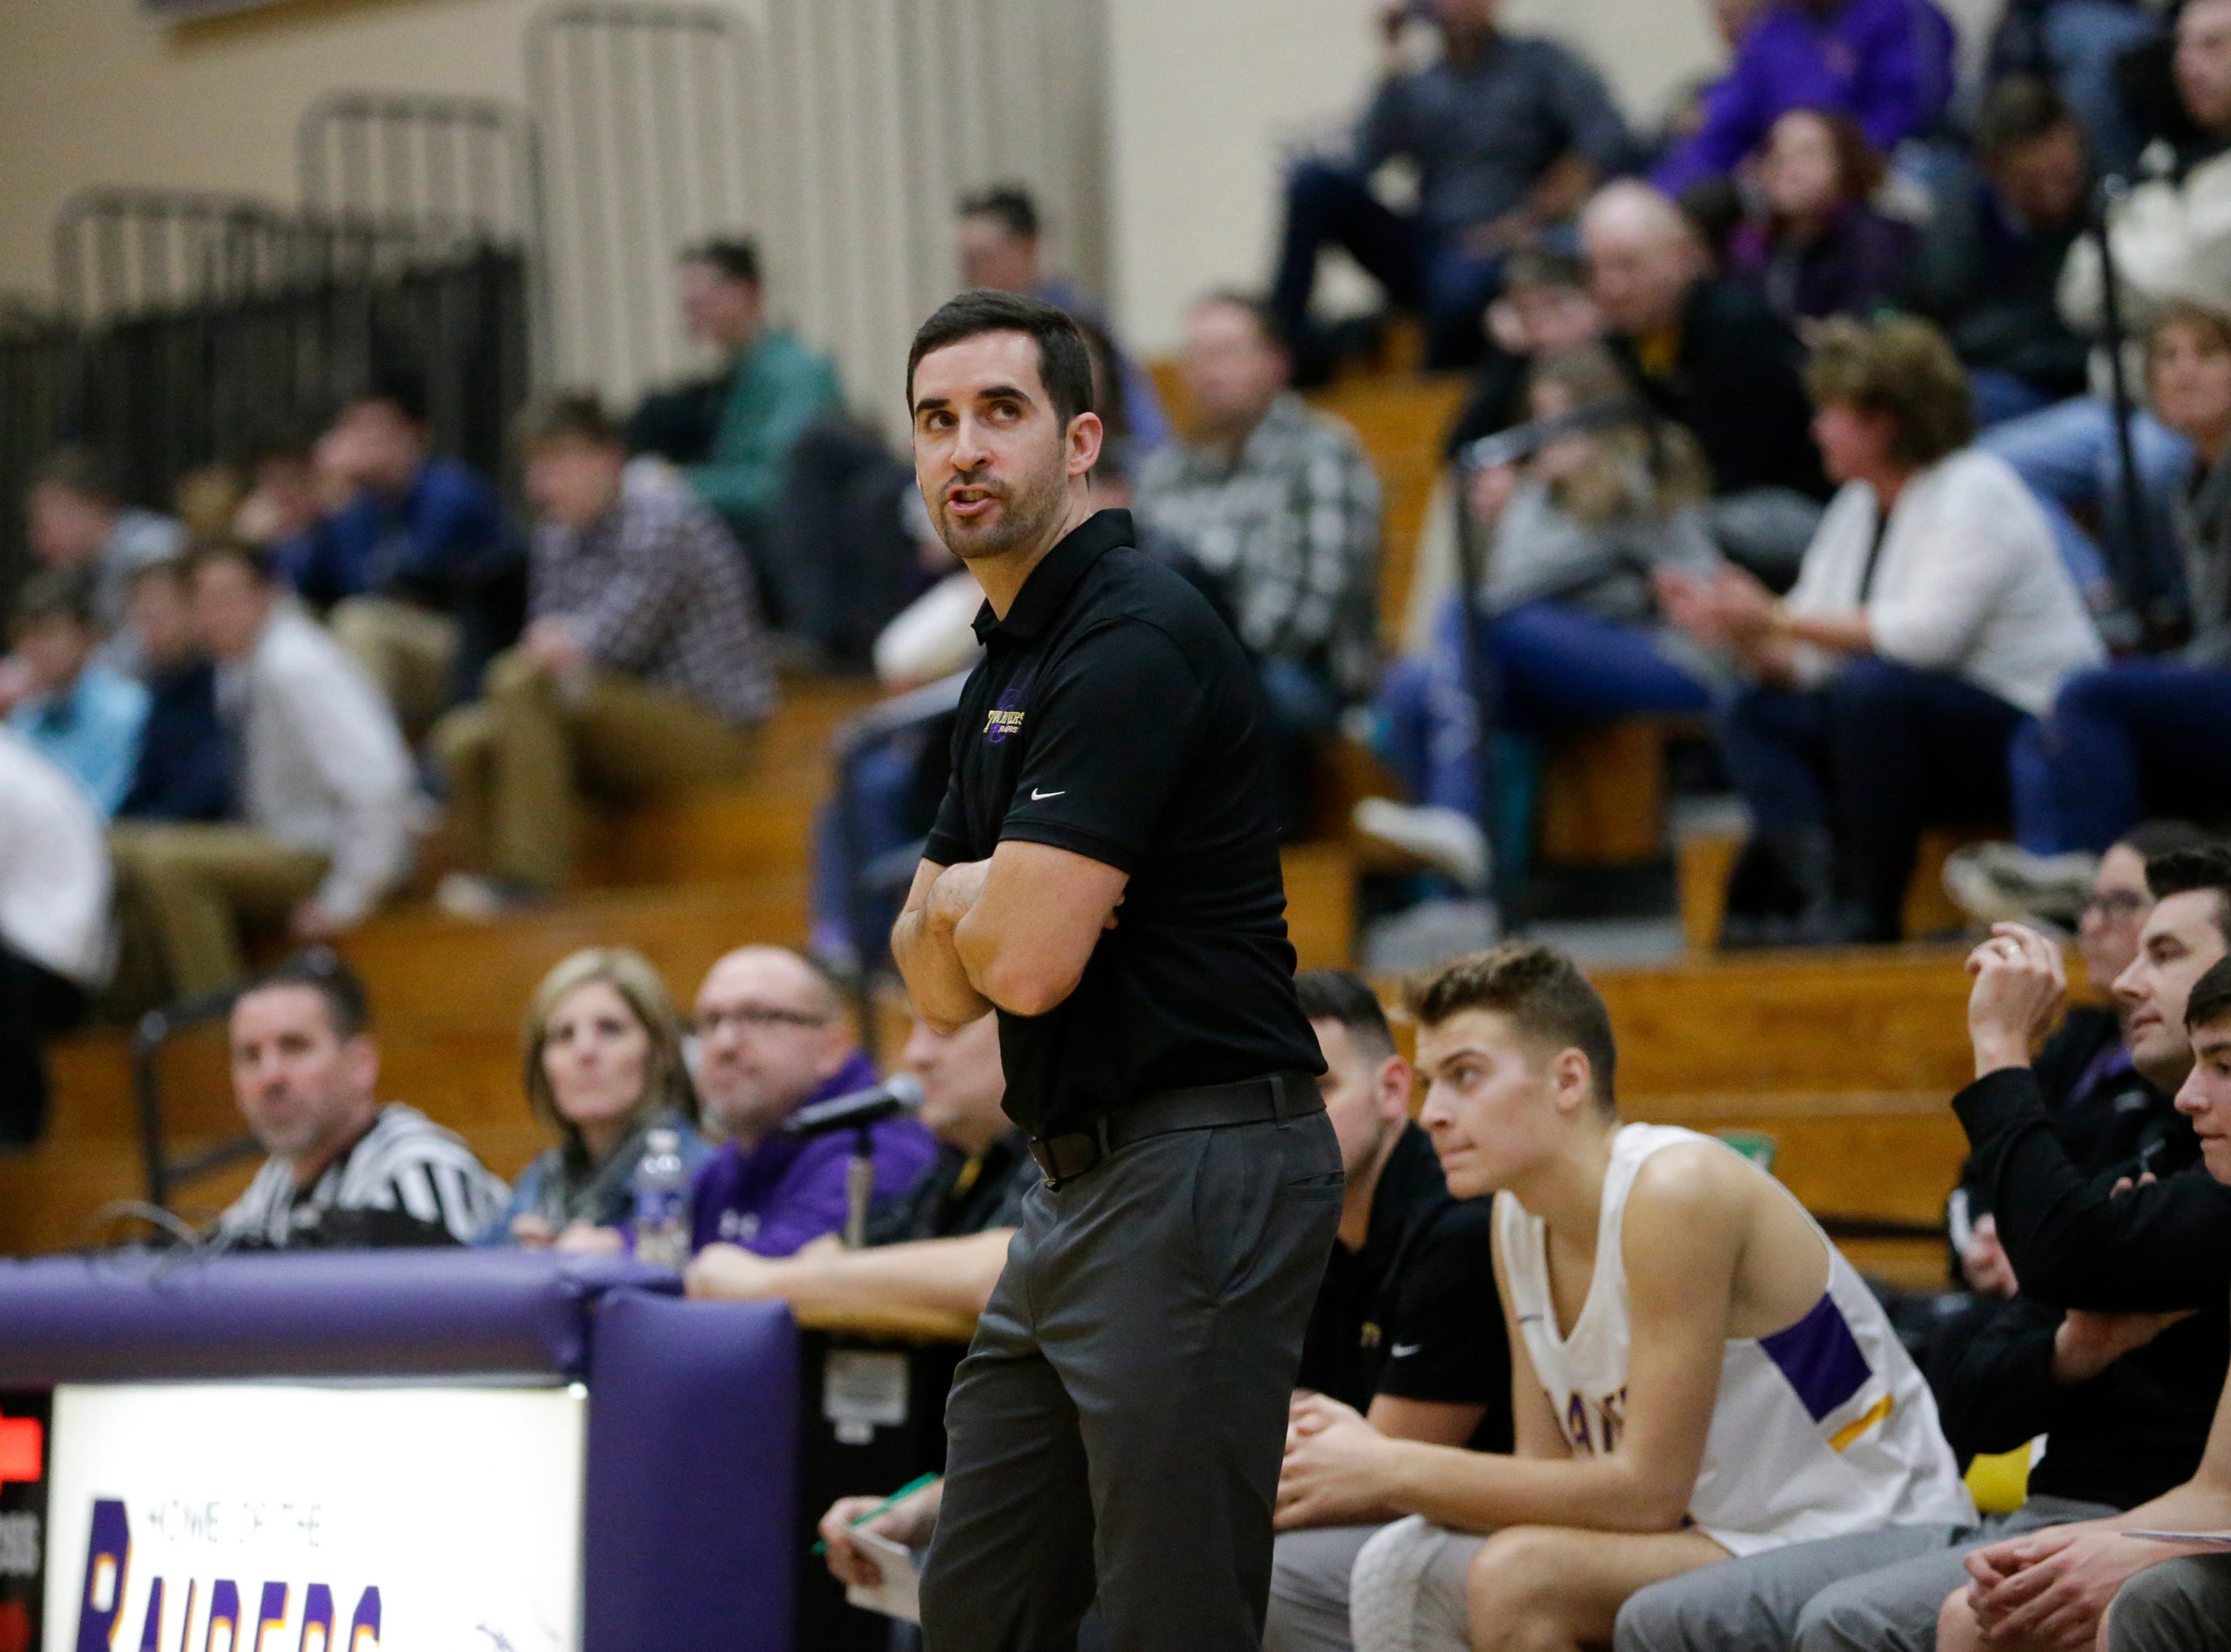 Two Rivers' head coach Nick Spencer looks at the scoreboard as the Raiders fall behind Sheboygan Falls during an Eastern Wisconsin Conference game at Two Rivers High School Tuesday, December 4, 2018, in Two Rivers, Wis. Joshua Clark/USA TODAY NETWORK-Wisconsin